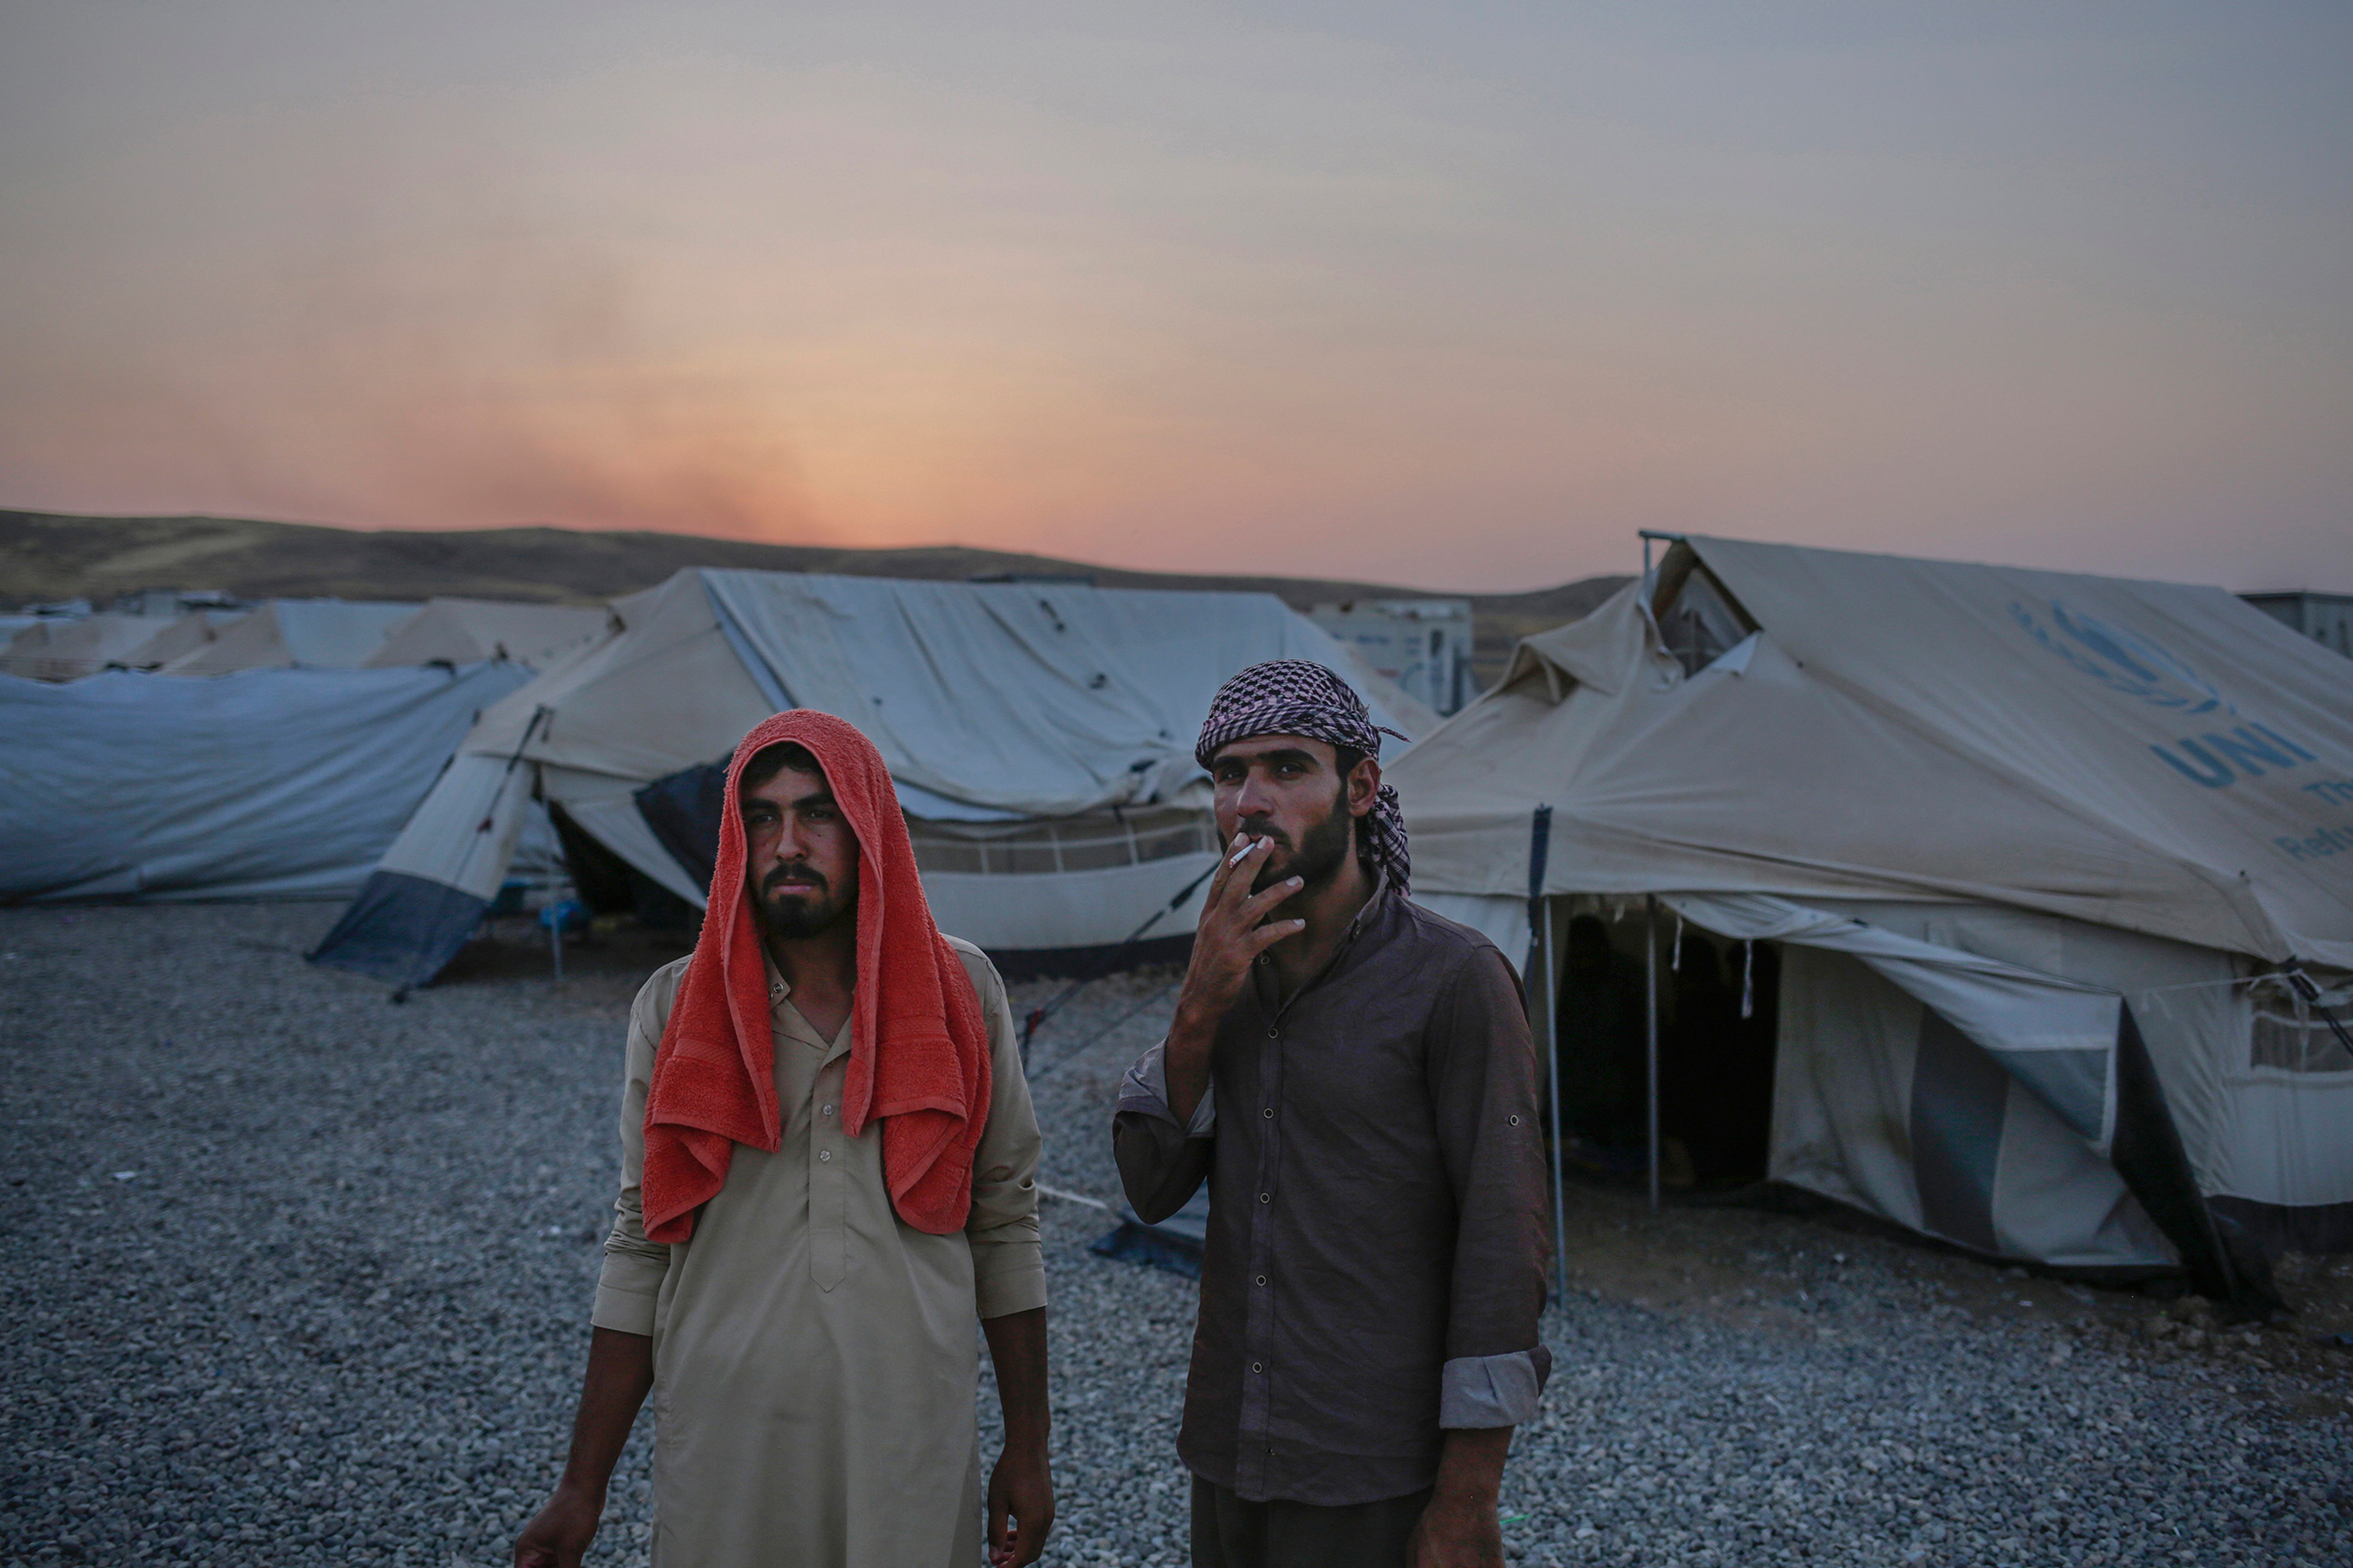 Younes Abdullah, left, and his nephew Rakan Hamid Jasim stand inside the Chamakor camp for displaced people in Northern Iraq. They both want to return to their homes in the town of Zummar, currently under Kurdish control, but Kurdish security forces don't allow them to return. The two relatives lived under Islamic State rule for almost three years.